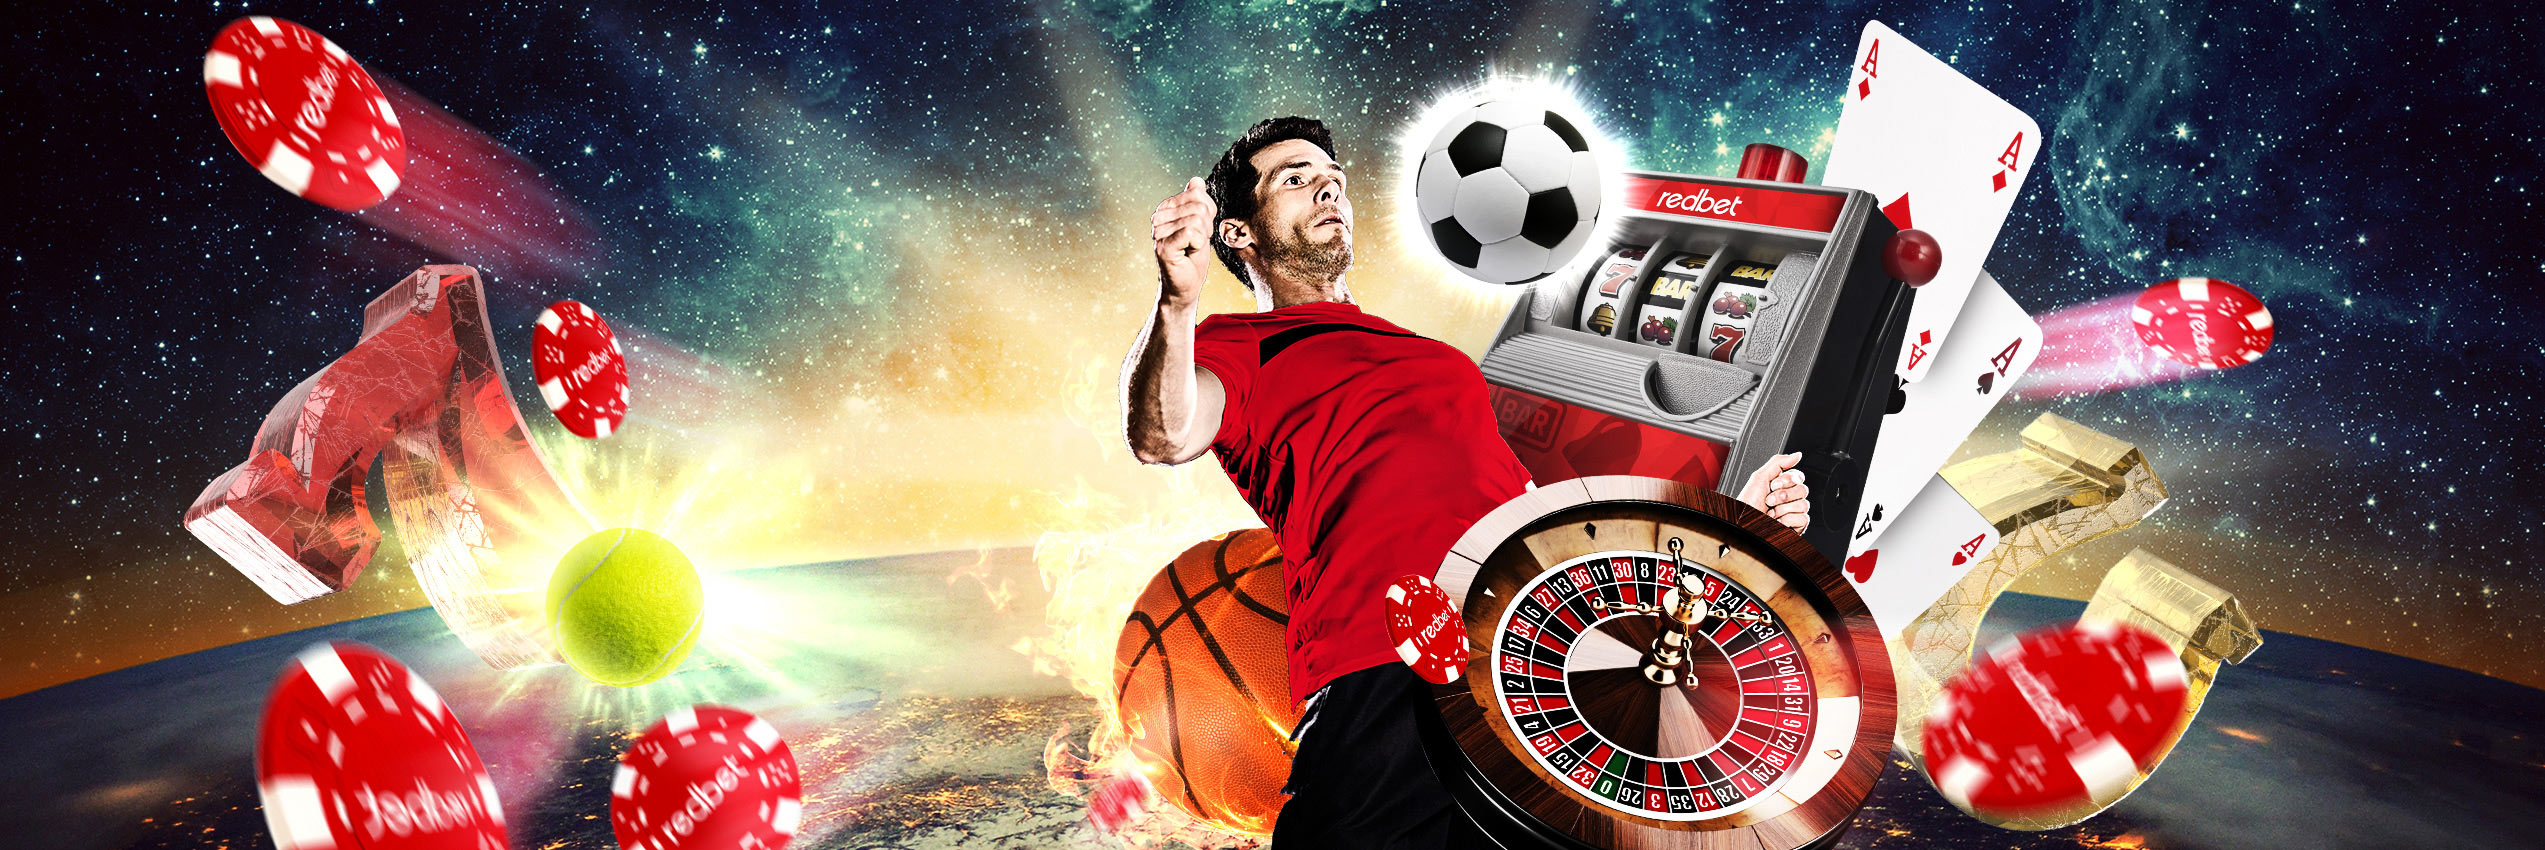 ### GRAB A 100% CASINO  ### BONUS UP TO £100 Min. £20 deposit. Valid 30 days. x35 wagering, £2 max bet [T&C Apply, 18+](https://www.redbet.com/en/promotions/bonus-terms-and-conditions), [Gambleaware.co.uk](https://www.gambleaware.co.uk)